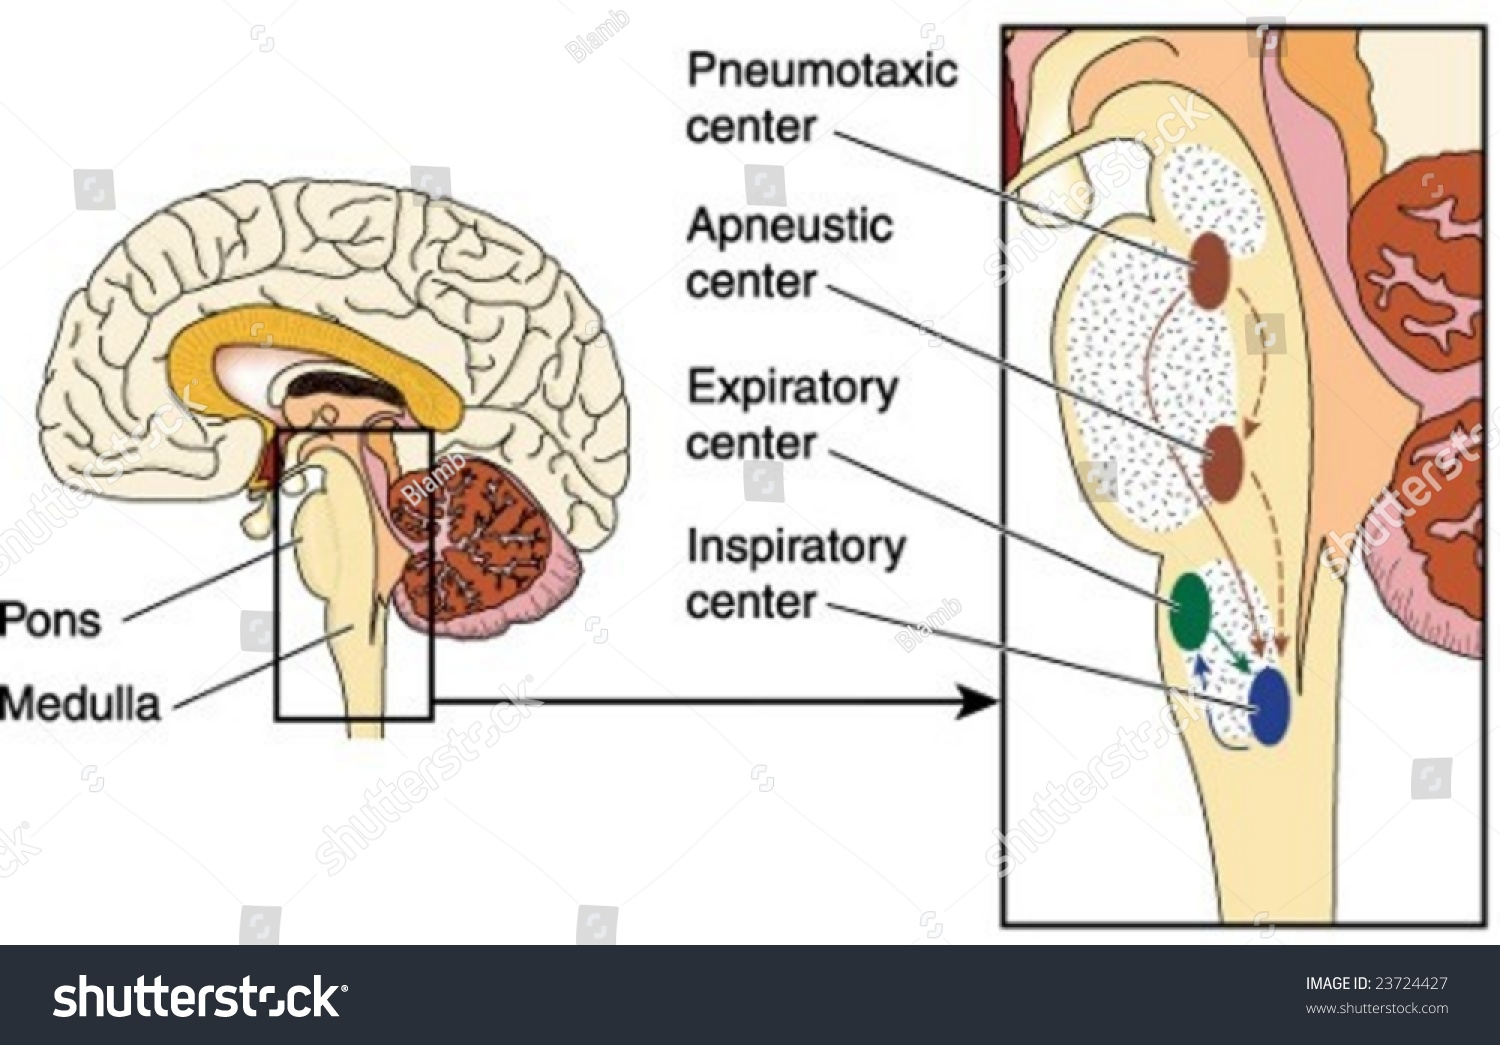 Respiratory System Pictures Pons